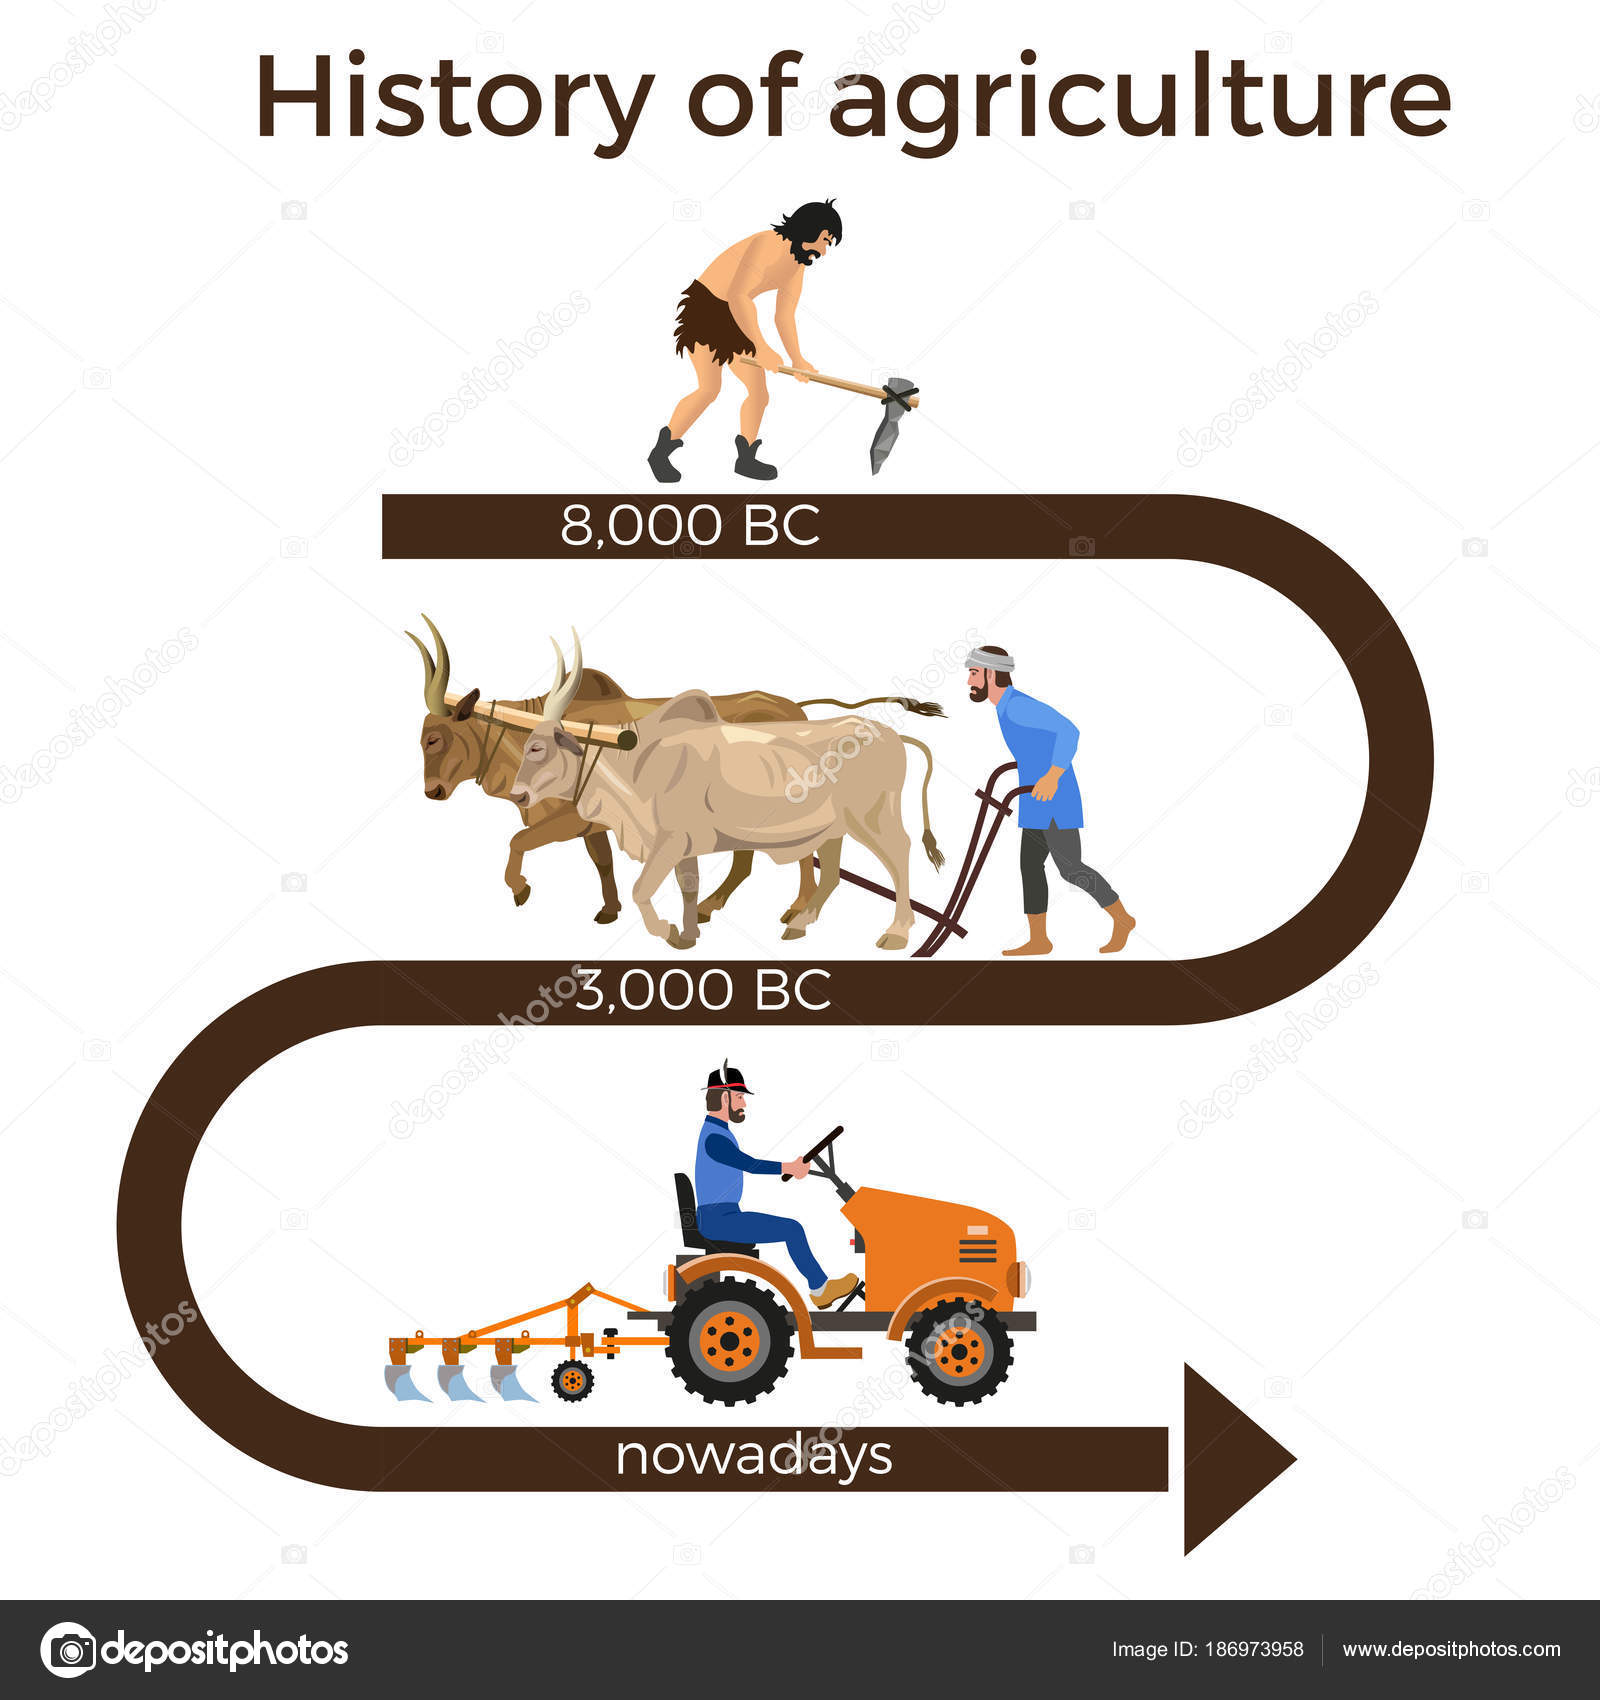 history of agriculture The history of american agriculture (1776-1990) covers the period from the first english settlers to the modern day below are detailed timelines covering farm machinery and technology, transportation, life on the farm, farmers and the land, and crops and livestock.